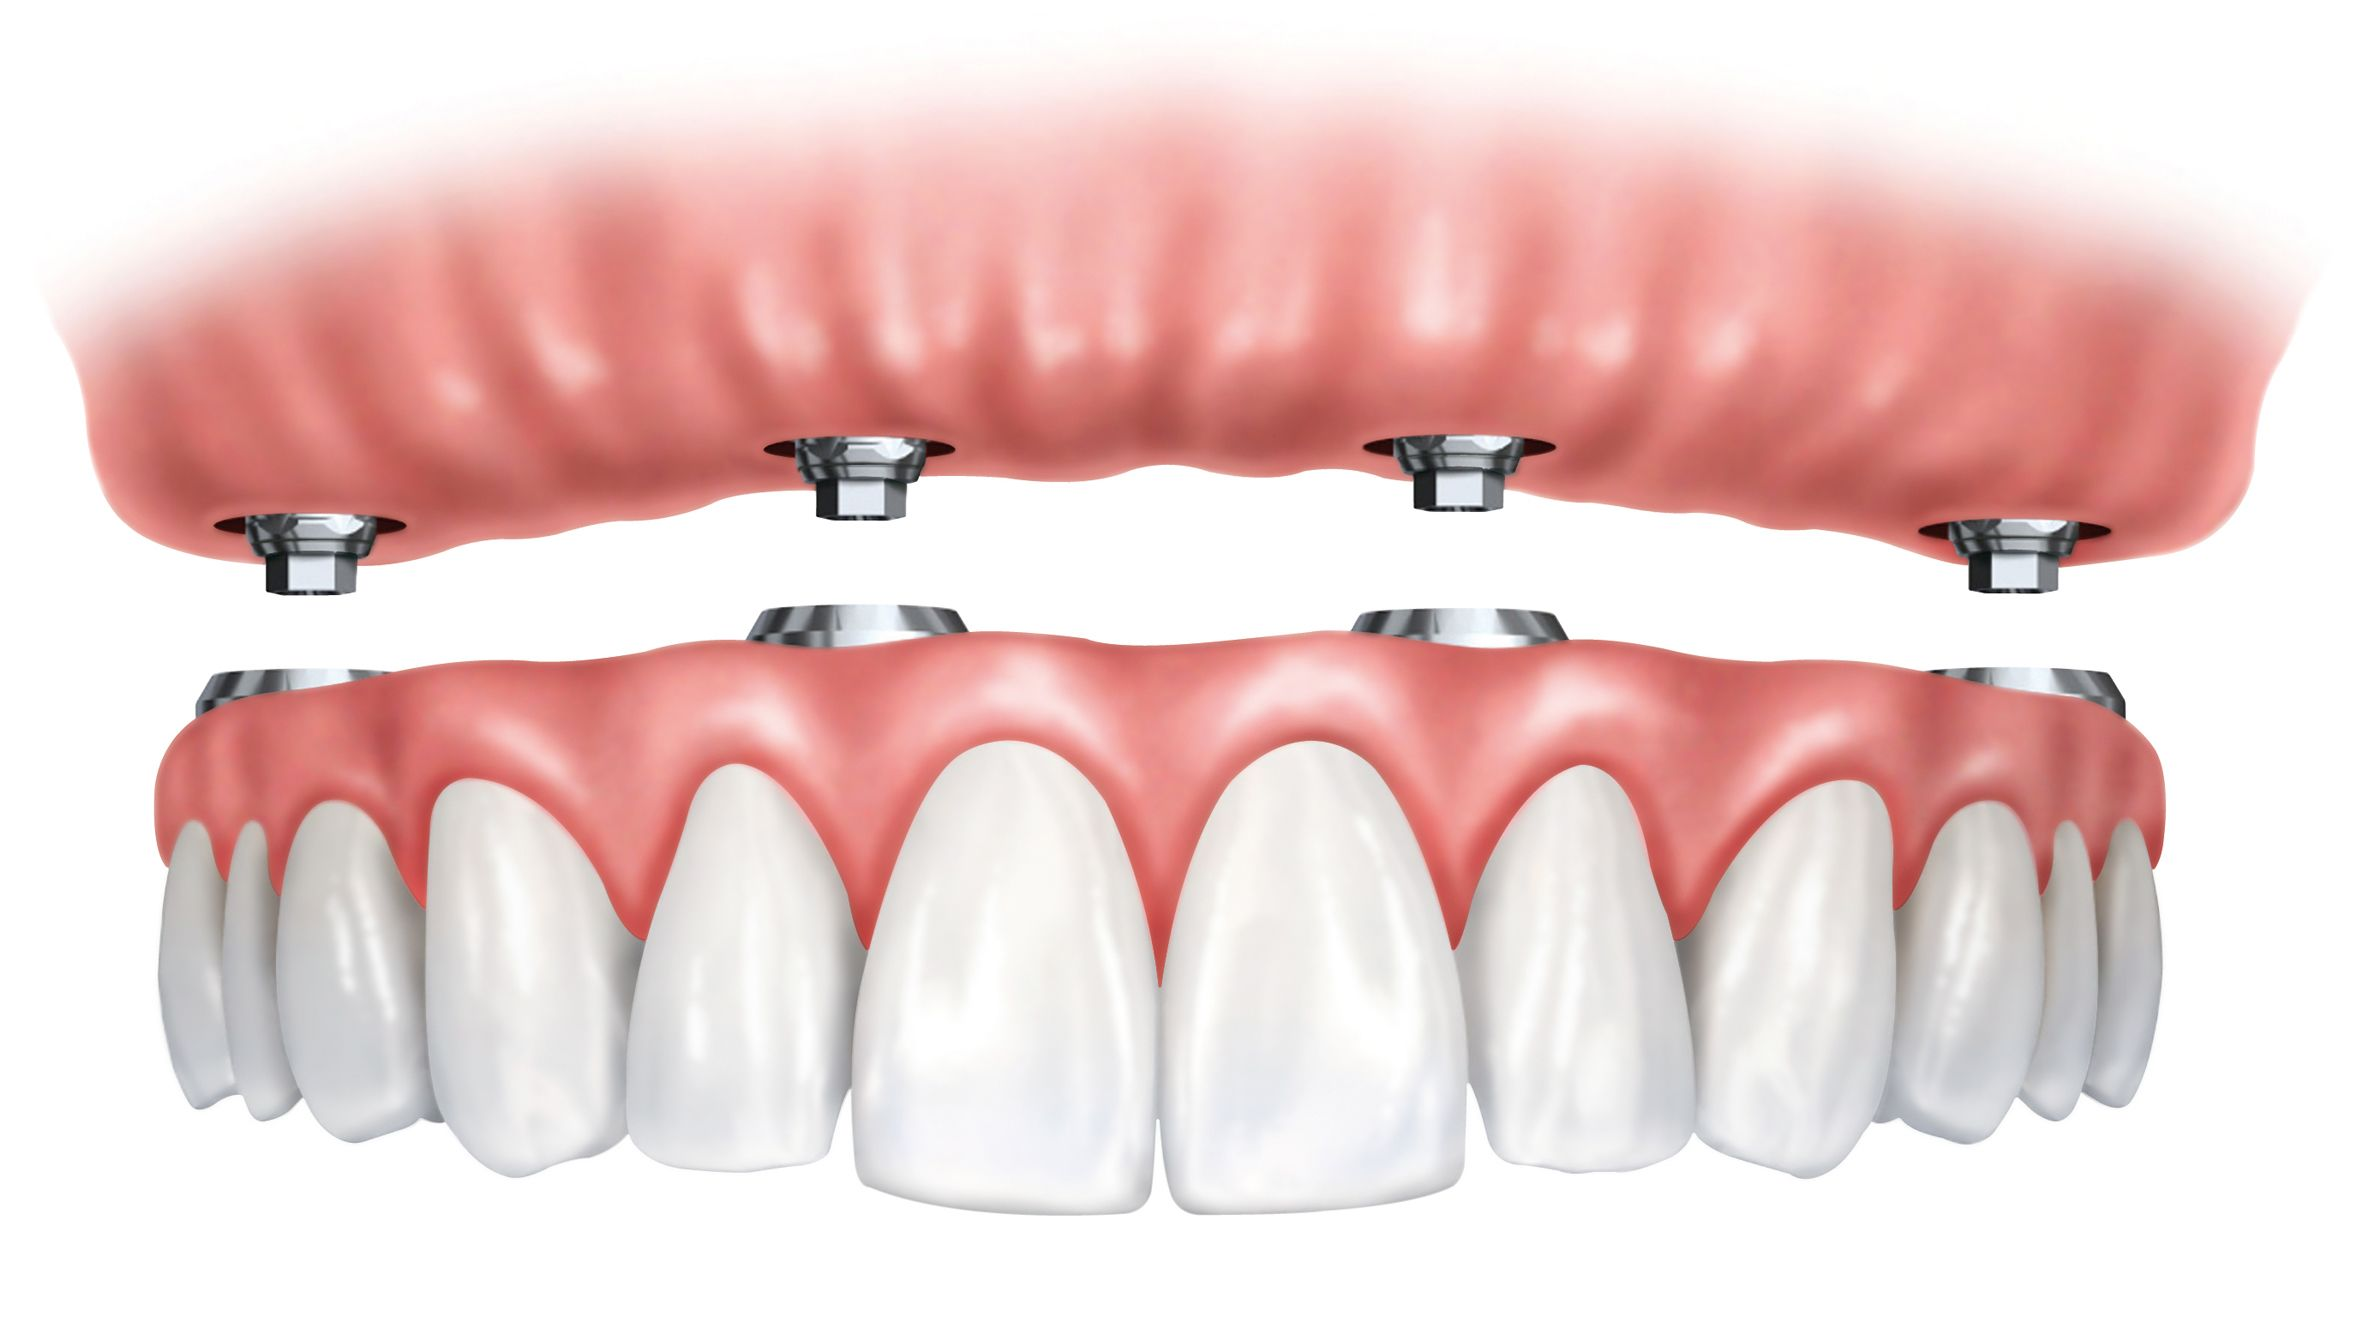 image of implant-supported dentures